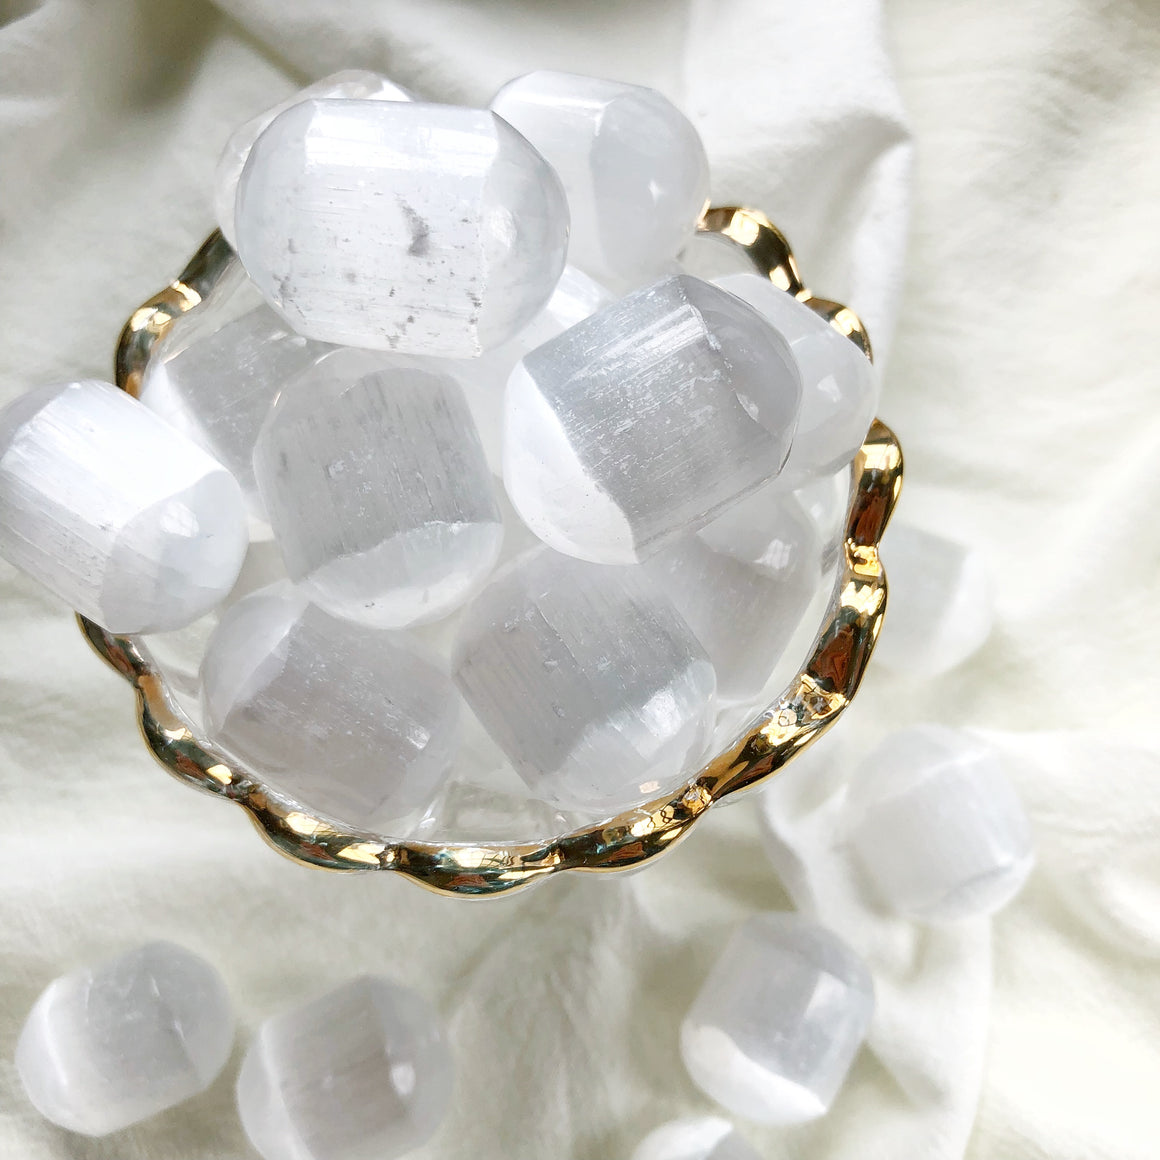 White Selenite Tumbled Stones